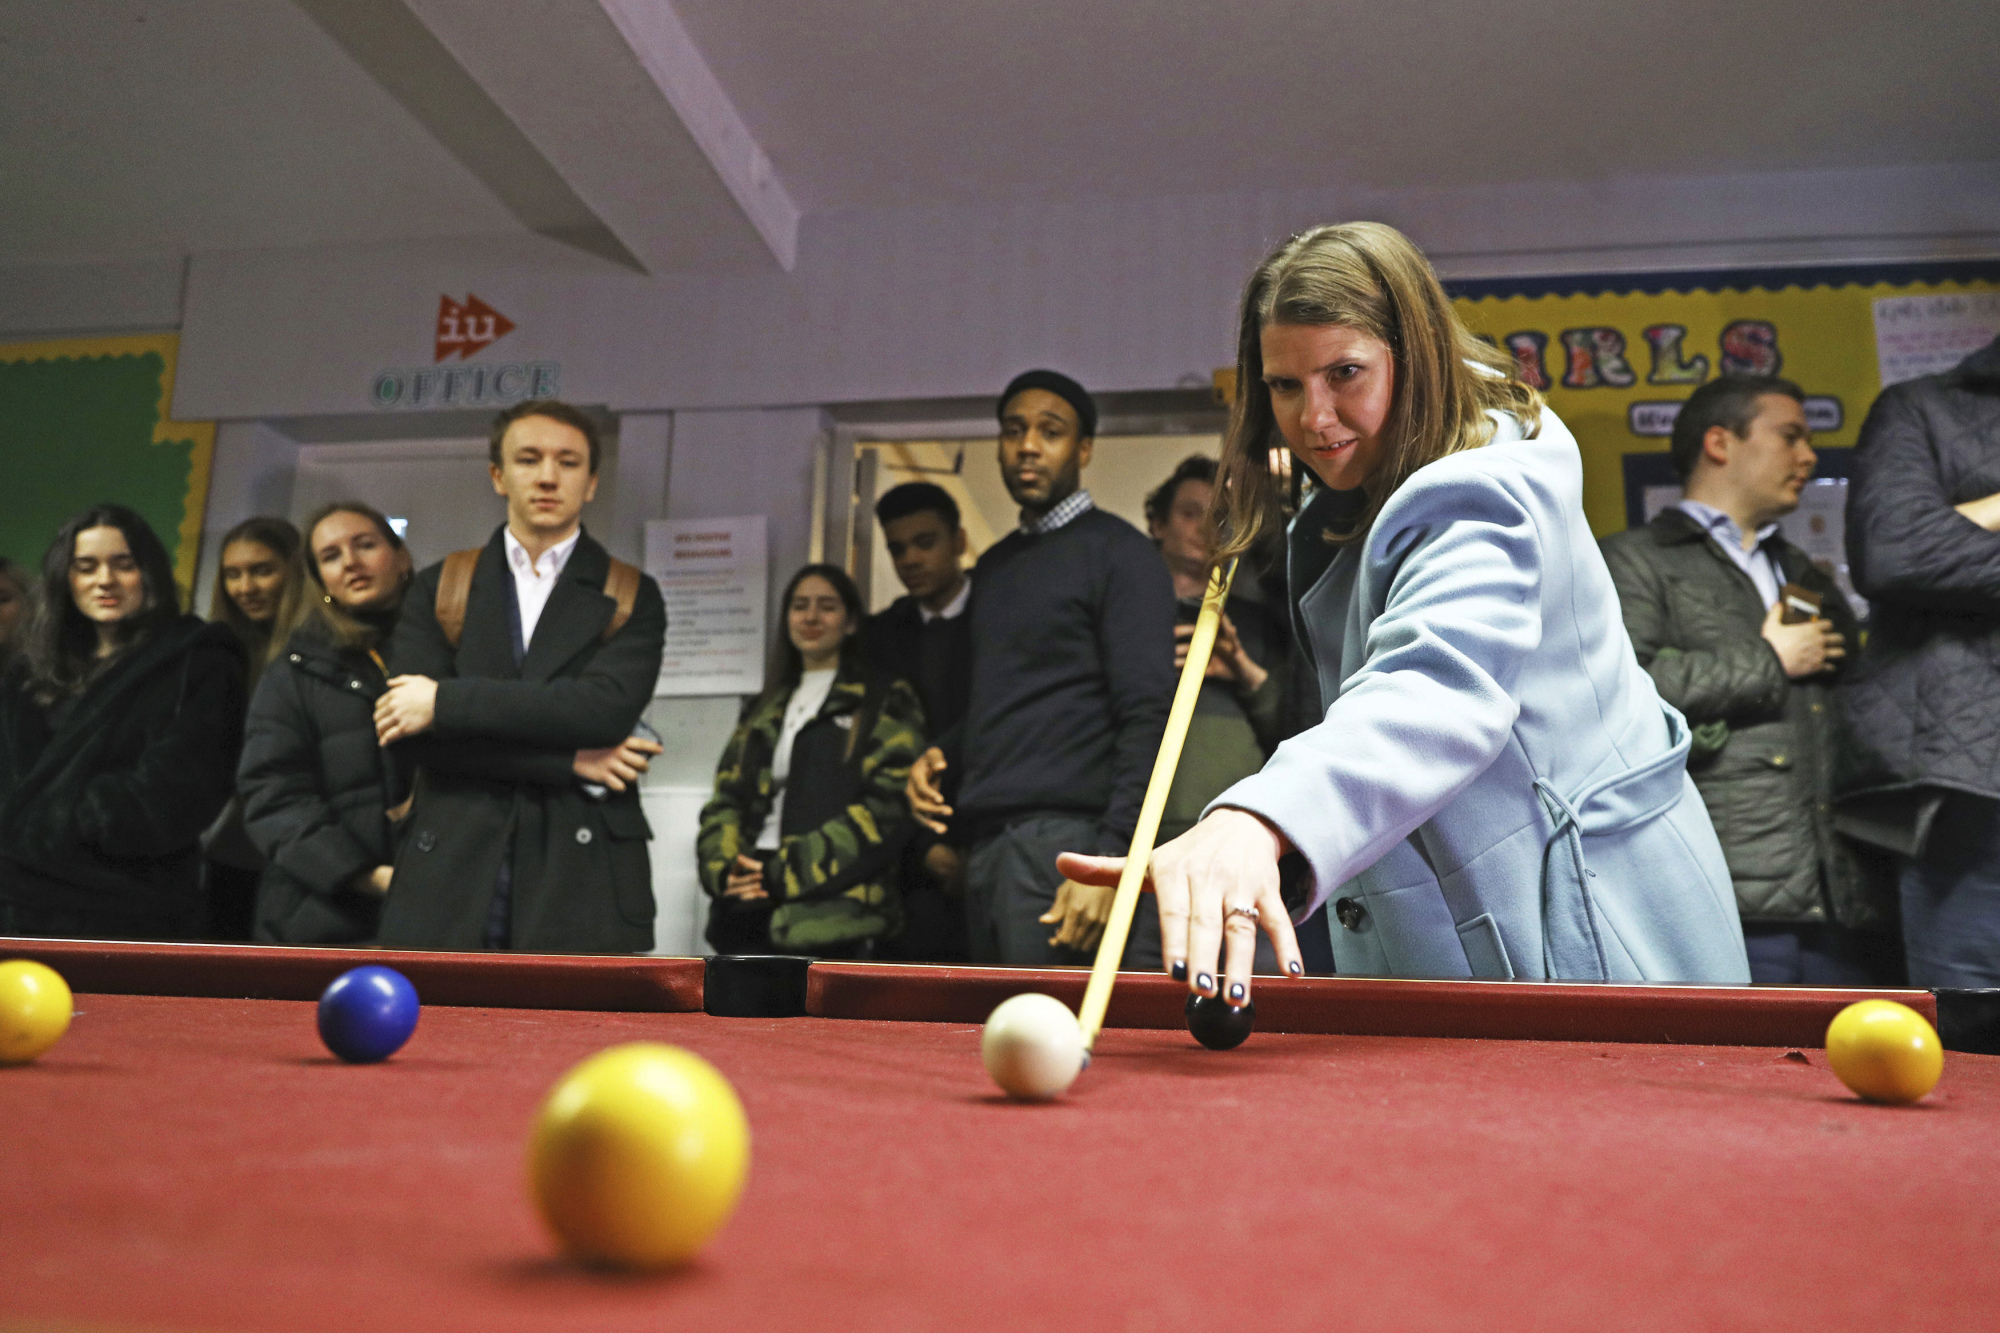 Liberal Democrats' leader Jo Swinson poses for a photo during a visit to Knights Youth Centre in London while on the general election campaign trail in London Wednesday. Britain goes to the polls on Dec. 12. | AARON CHOWN / PA / VIA AP